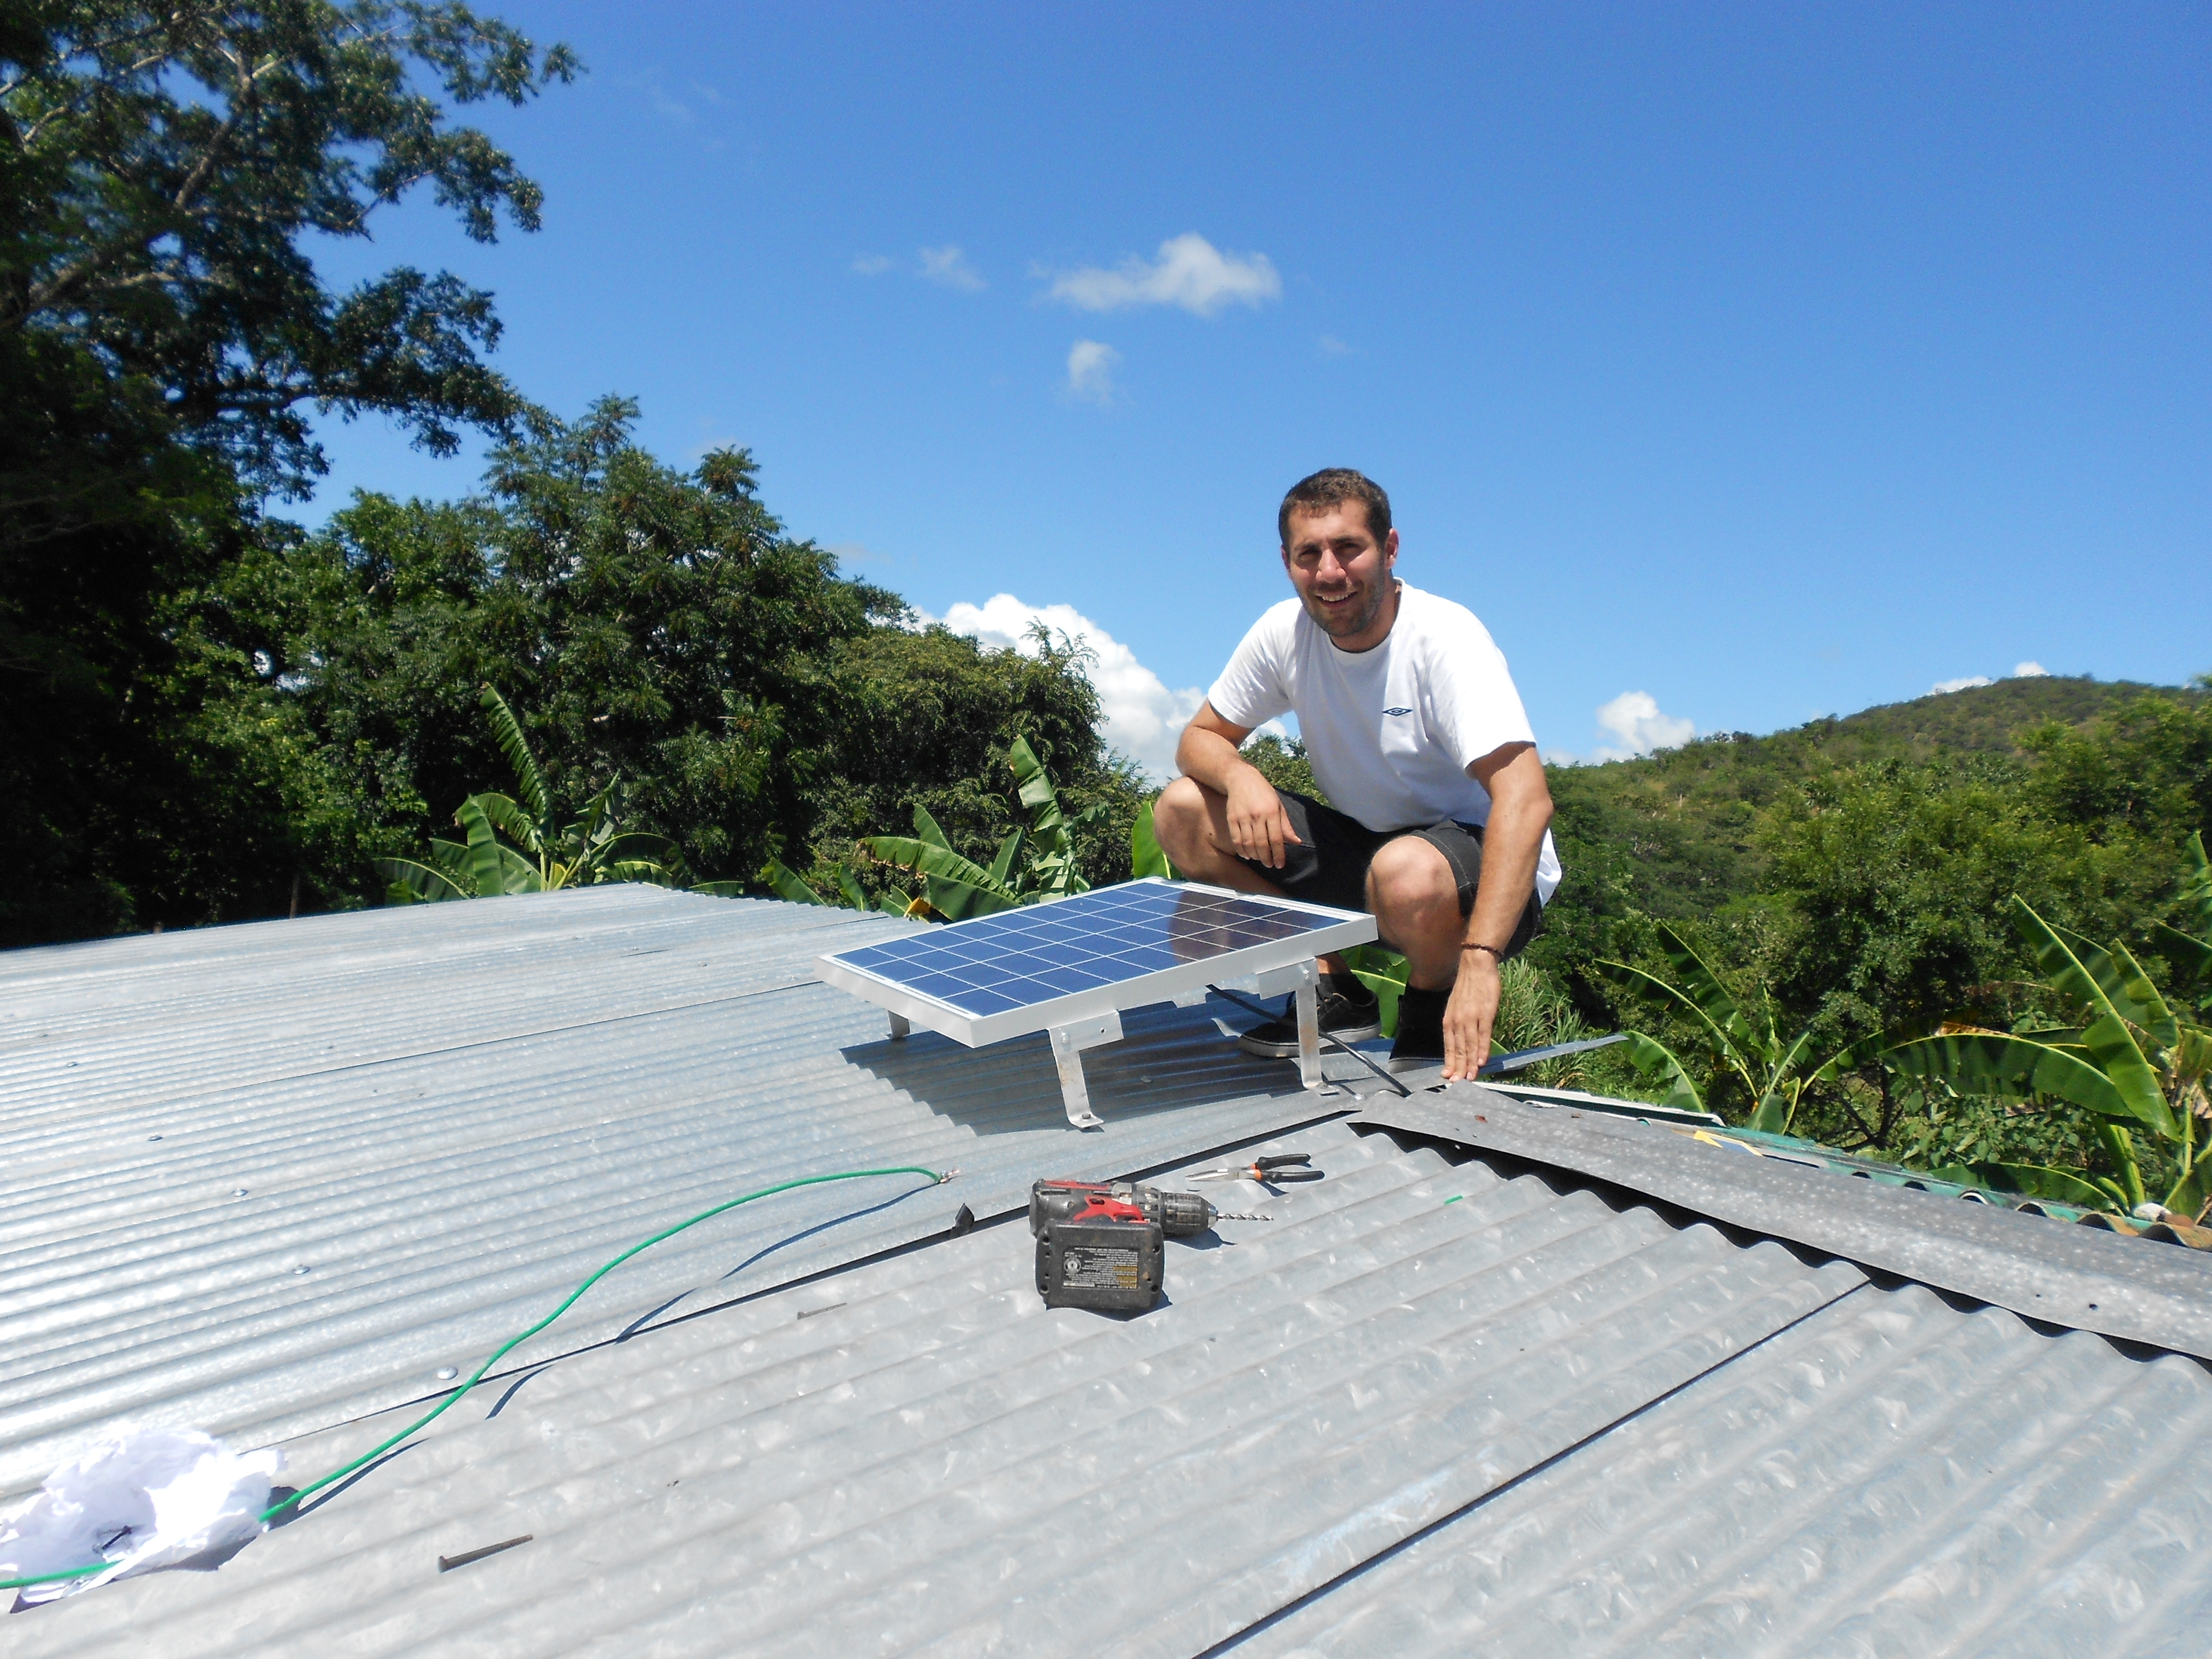 Andrés, working in Nicaragua for the NGO Grupo Fénix